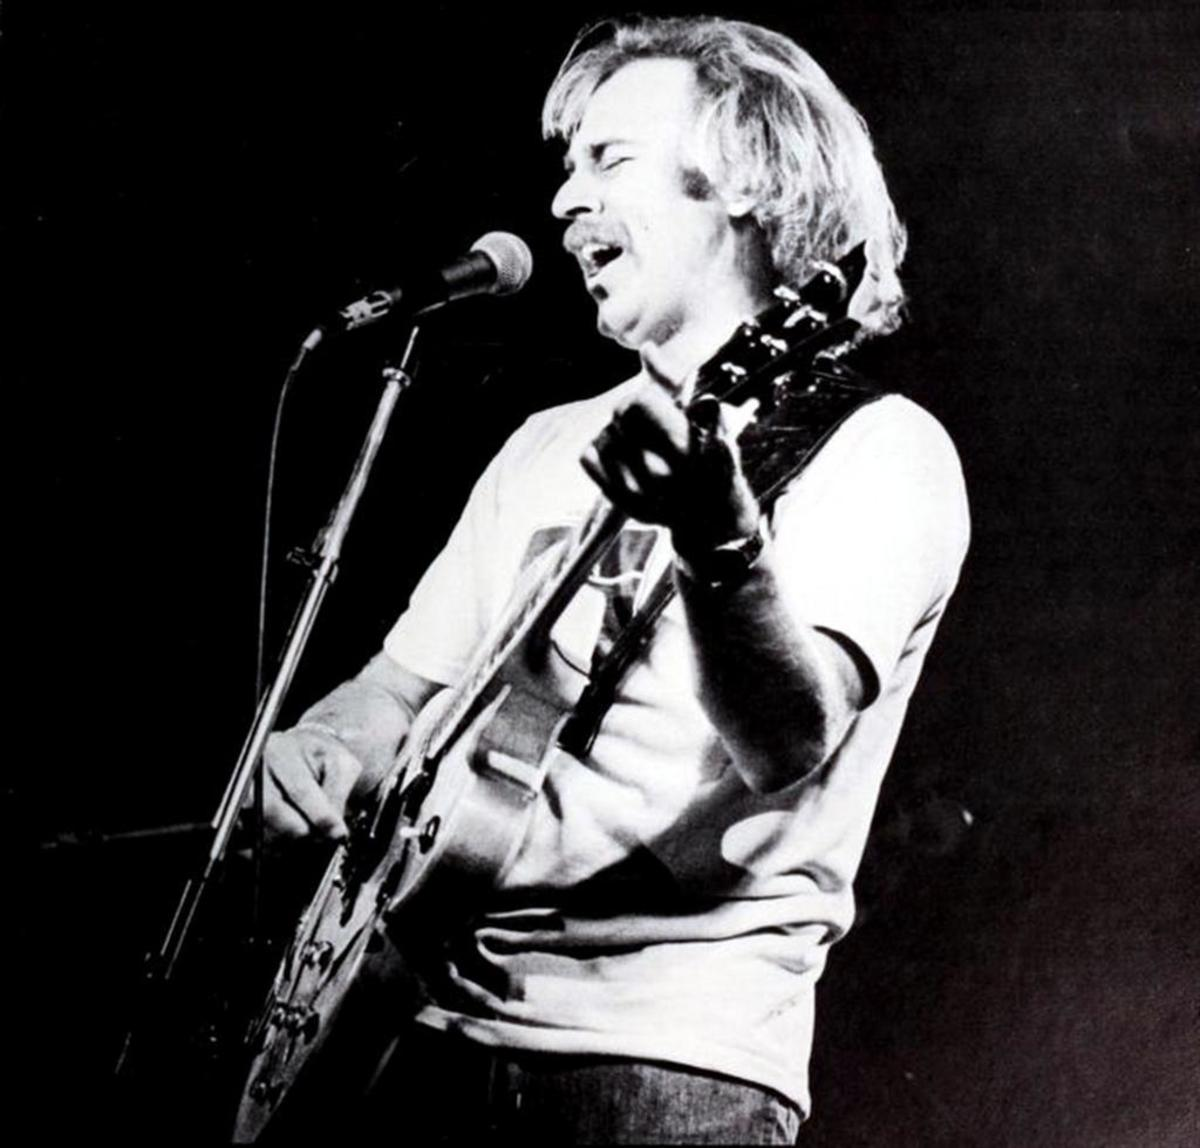 Jimmy Buffett performing at Clemson University, February 25, 1977.